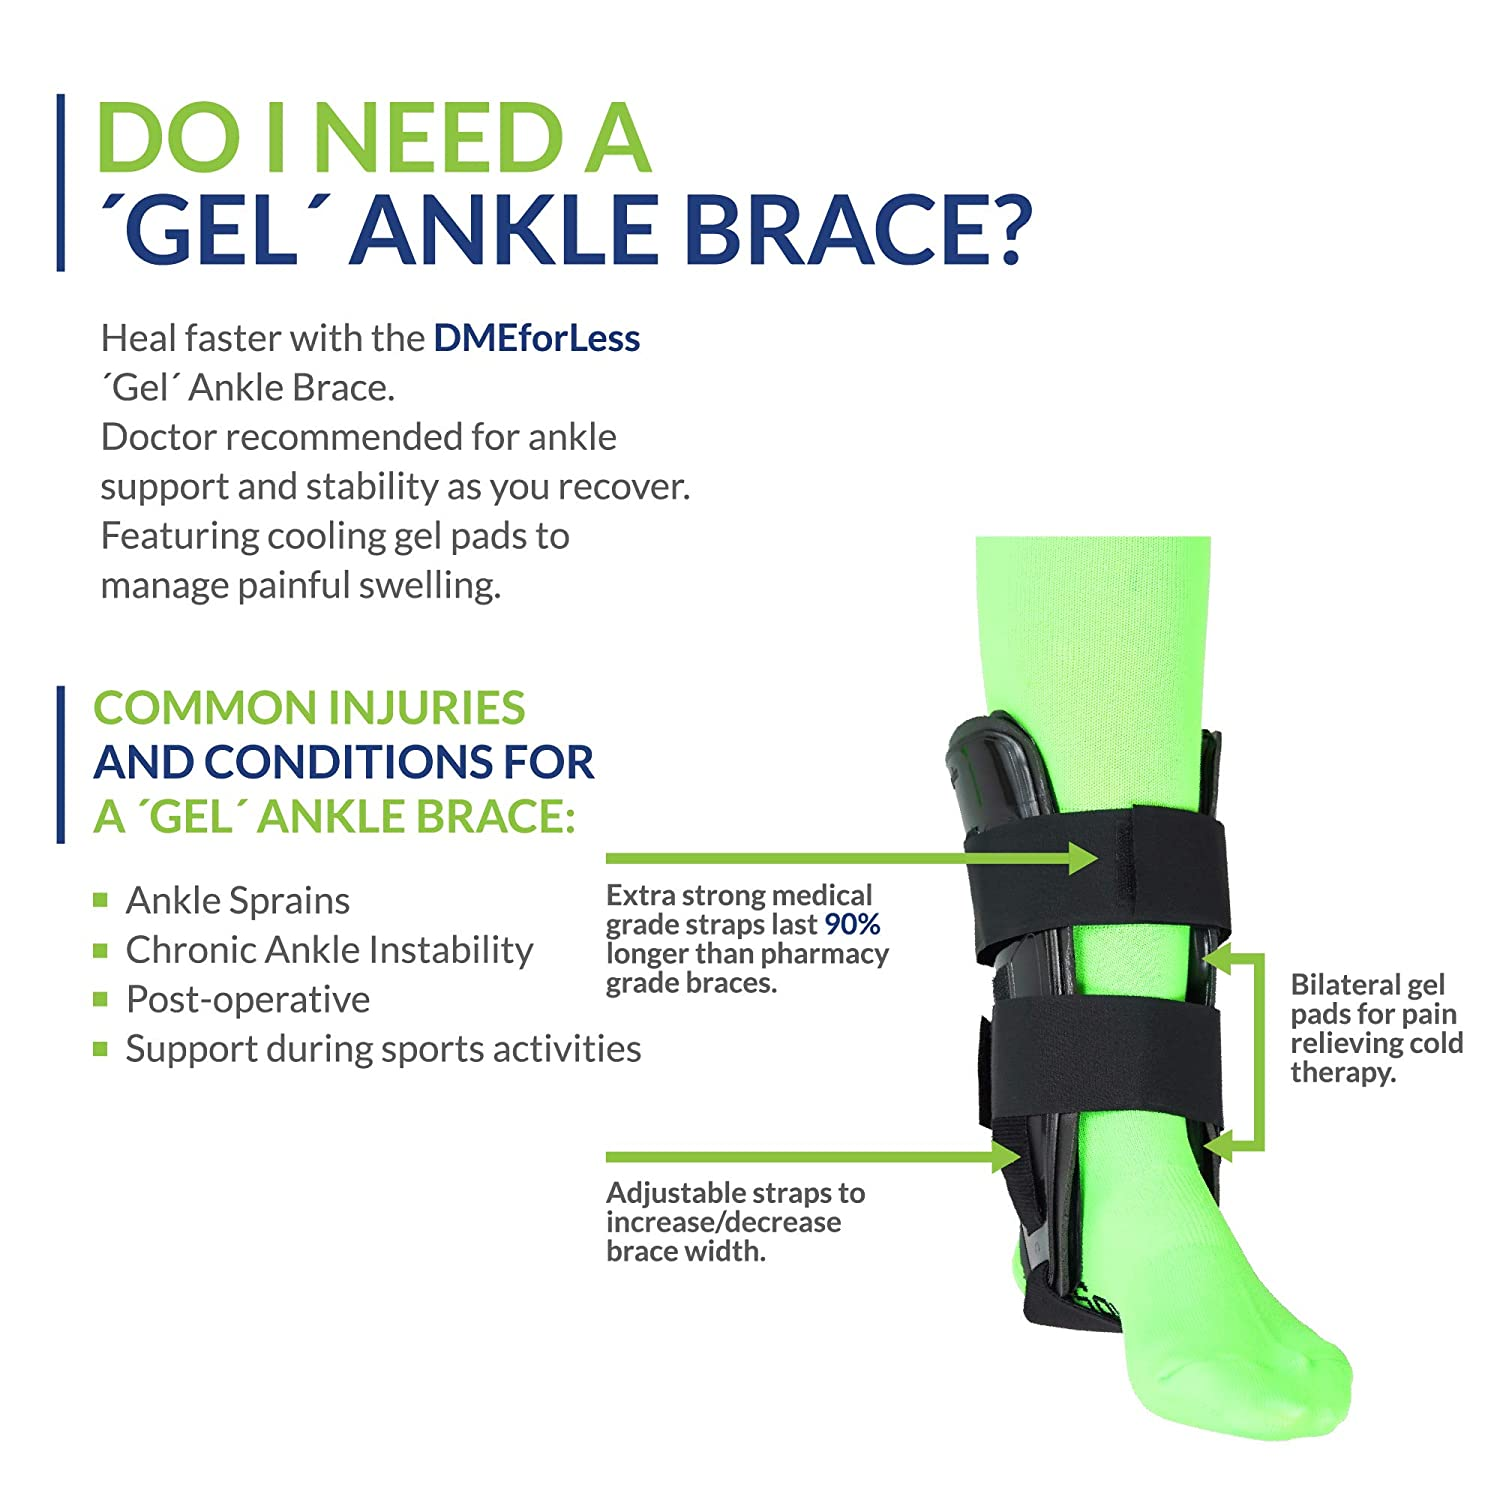 Swelling Better Circulation Sprain Recovery Foot Support Splint for Injury Post-Surgery DMEforLess Air Gel Ankle Stirrup Brace All-Day Compression /& Pain Relief Adjustable Rigid Stabilizer